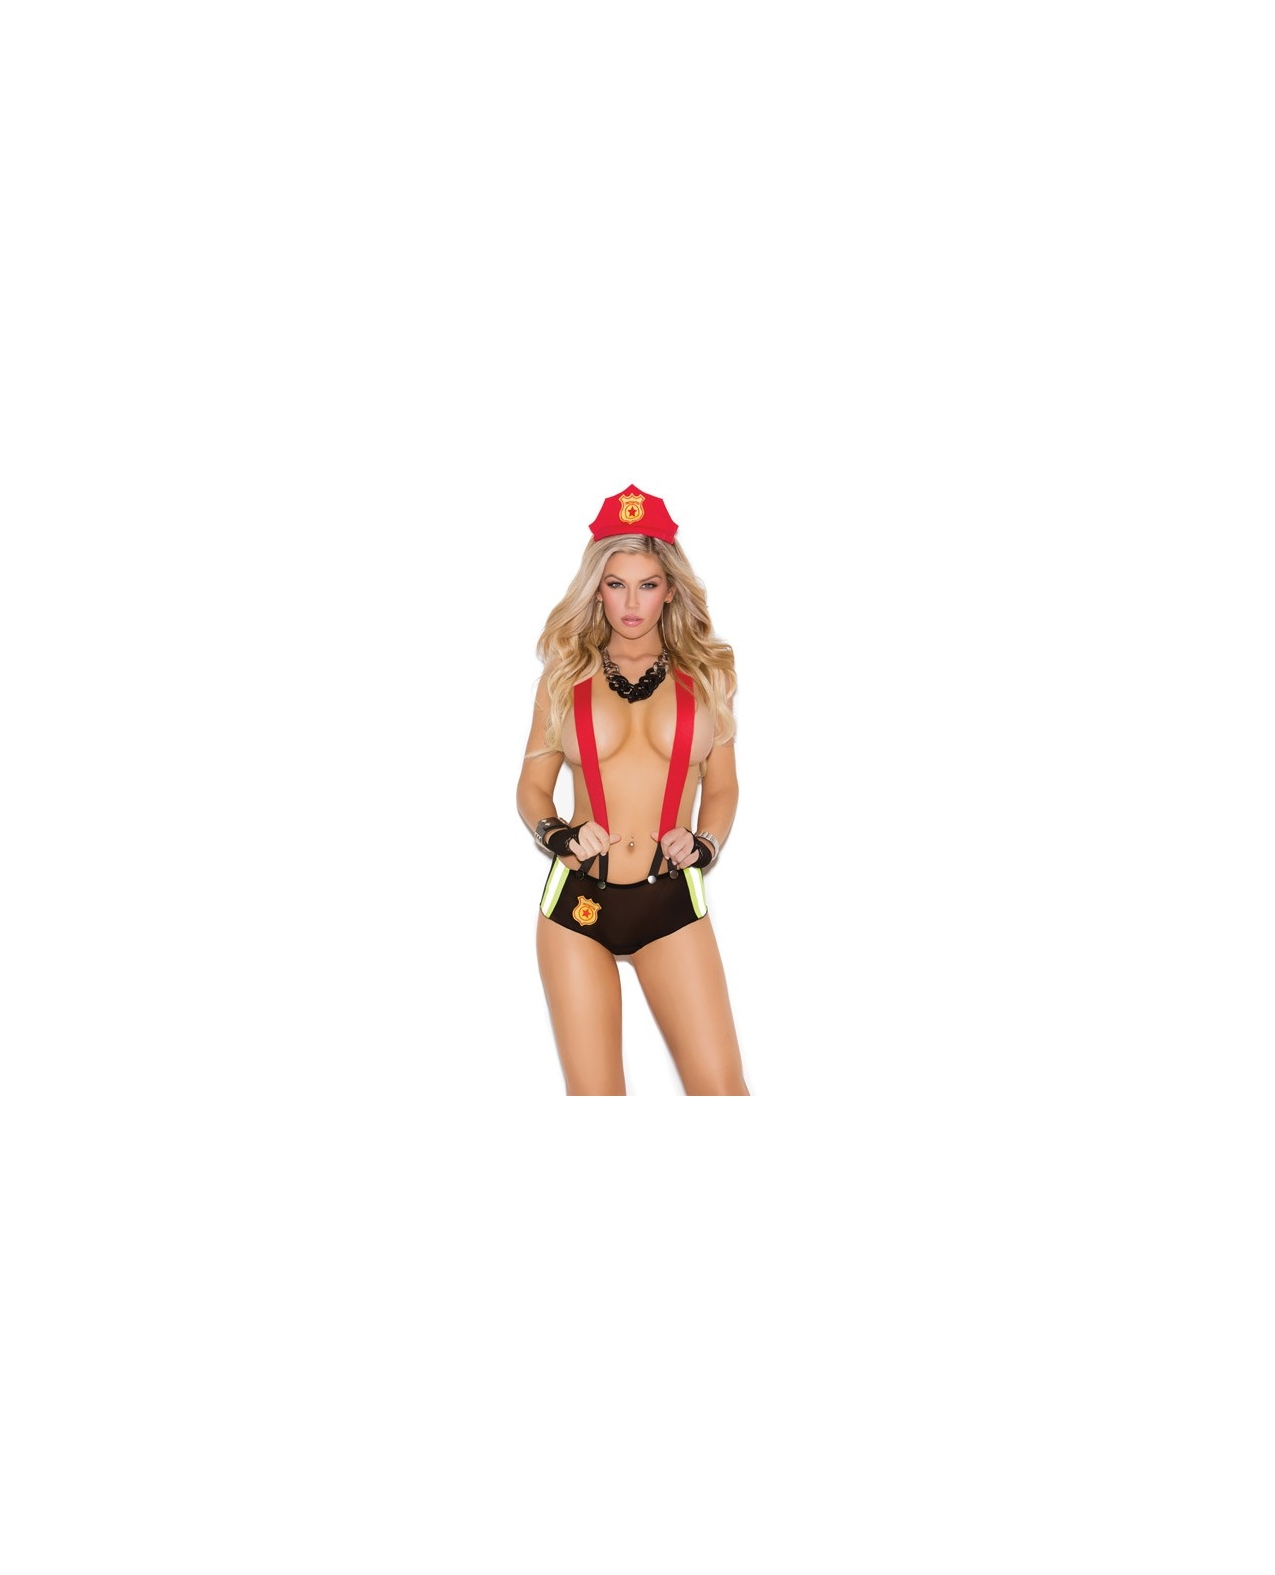 Vivace Put Out My Fire Mesh Booty Shorts w/Attached Suspenders & Head Piece Black O/S